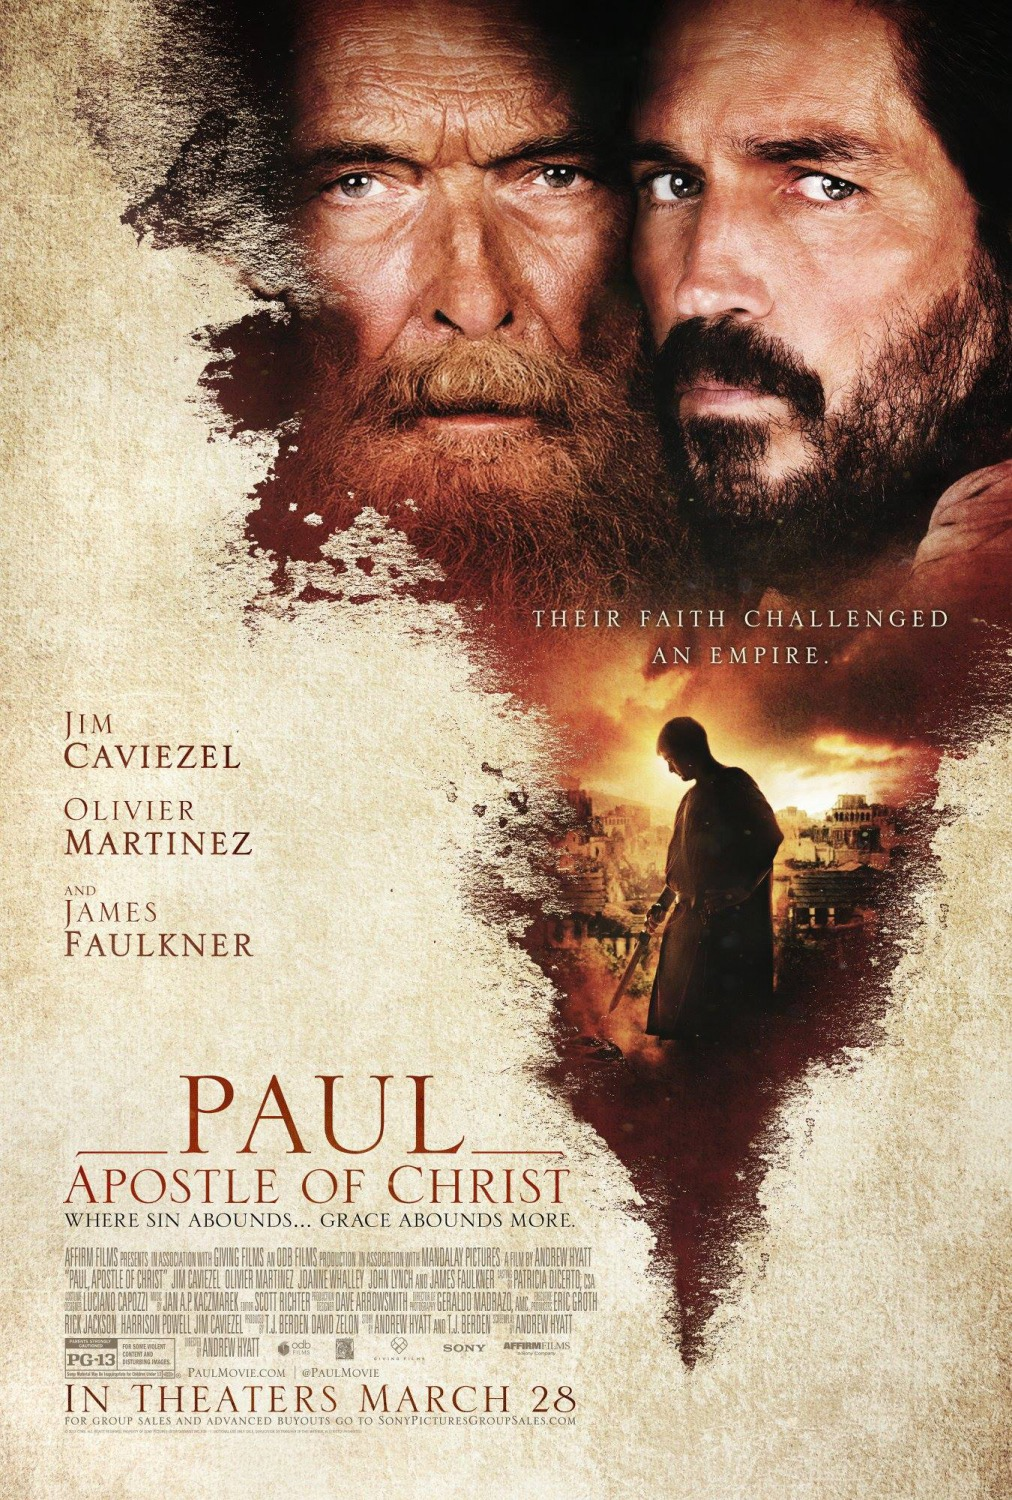 paul apostle of christ 2018 imdb